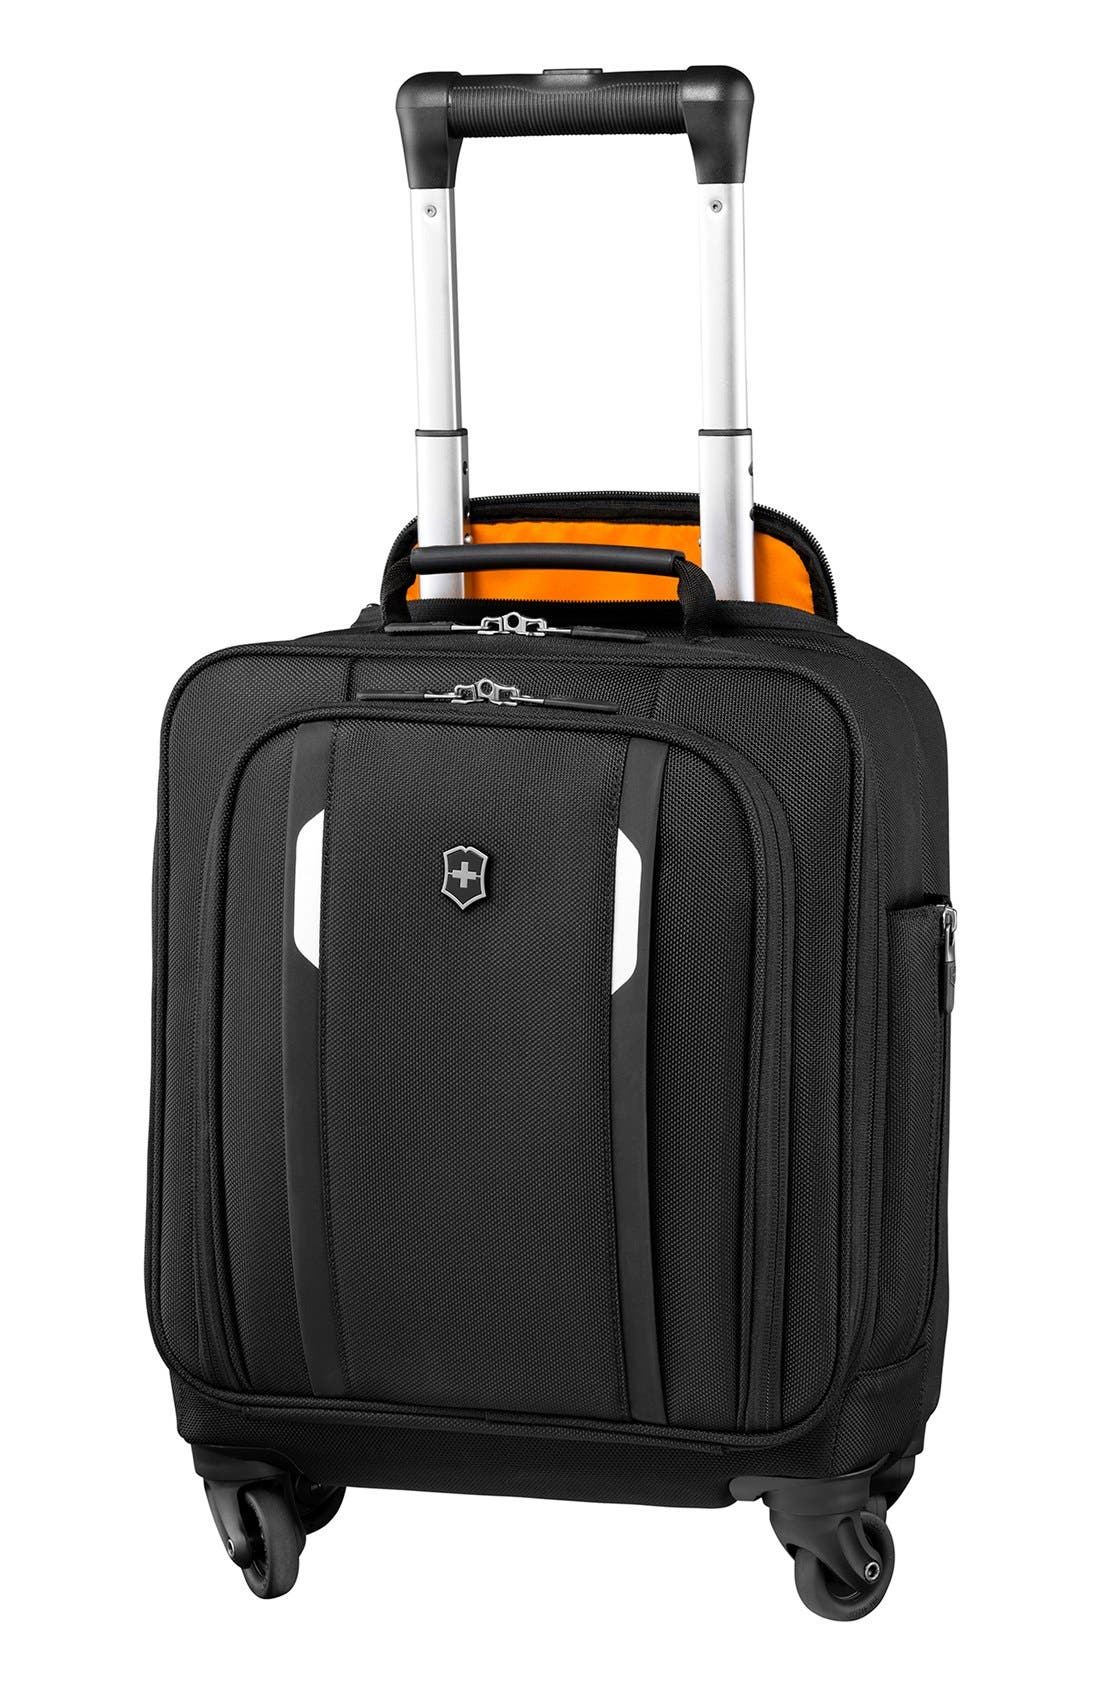 Alternate Image 1 Selected - Victorinox Swiss Army® WT 5.0 Wheeled Tote Bag